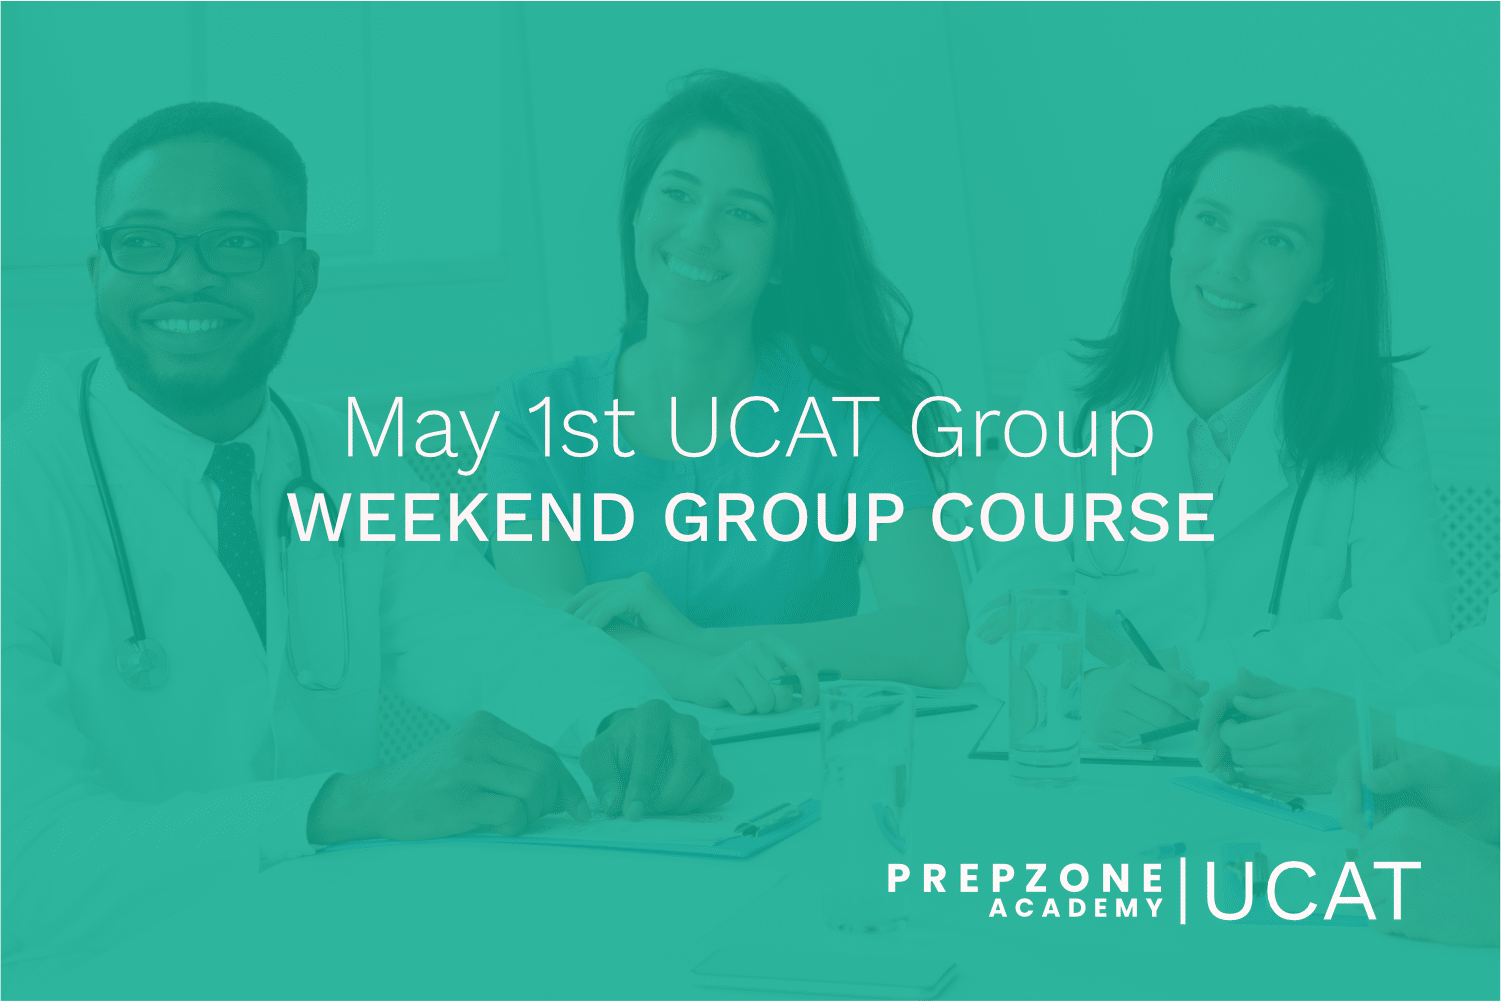 UCAT Weekend Group Course Schedule – May 1st, 2021